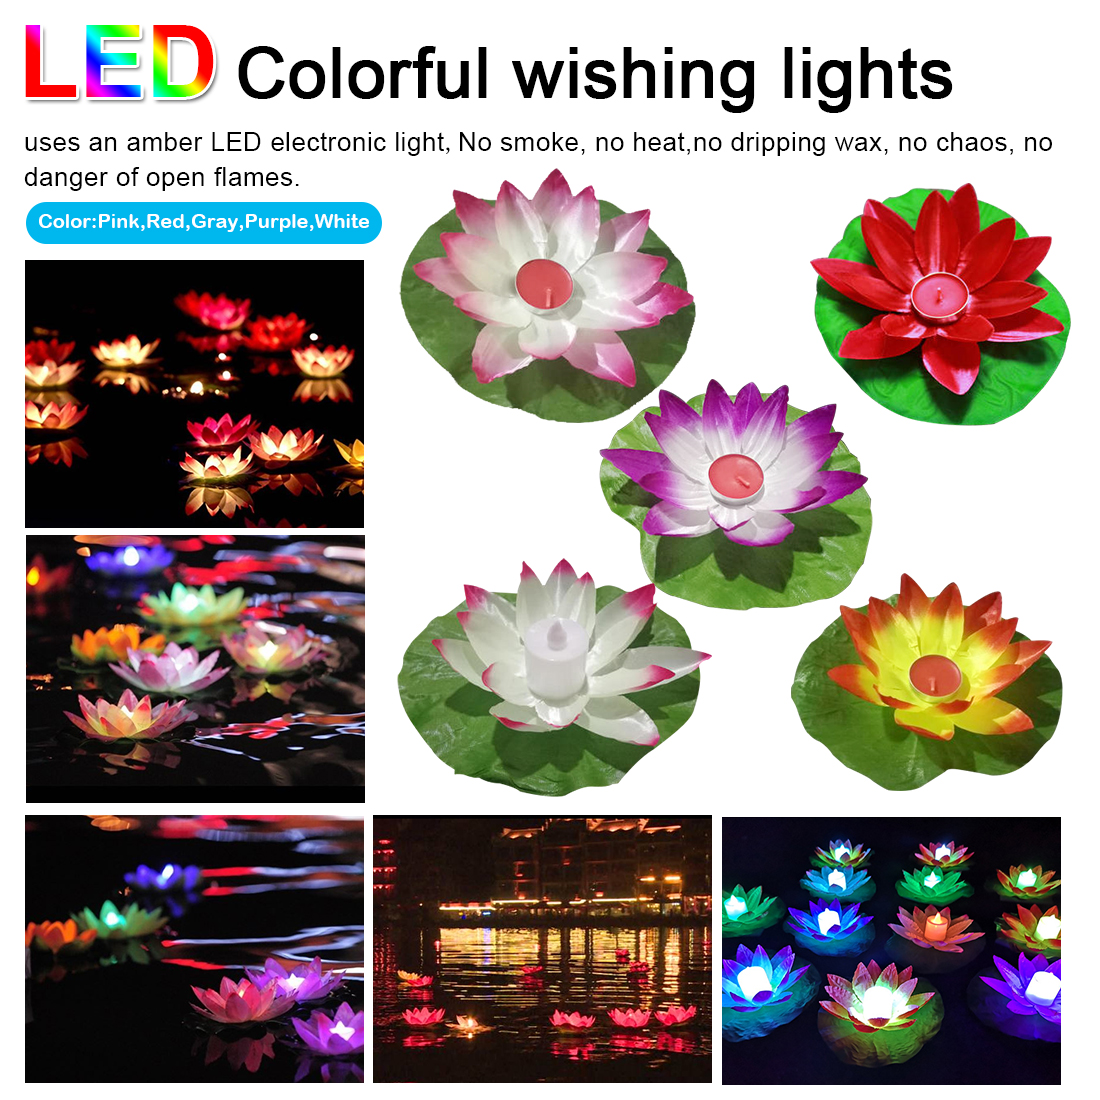 Landscape Lamp Colorful LED Floating Lotus Flower Lamps On Water Swimming Pool Garden Decoration Light